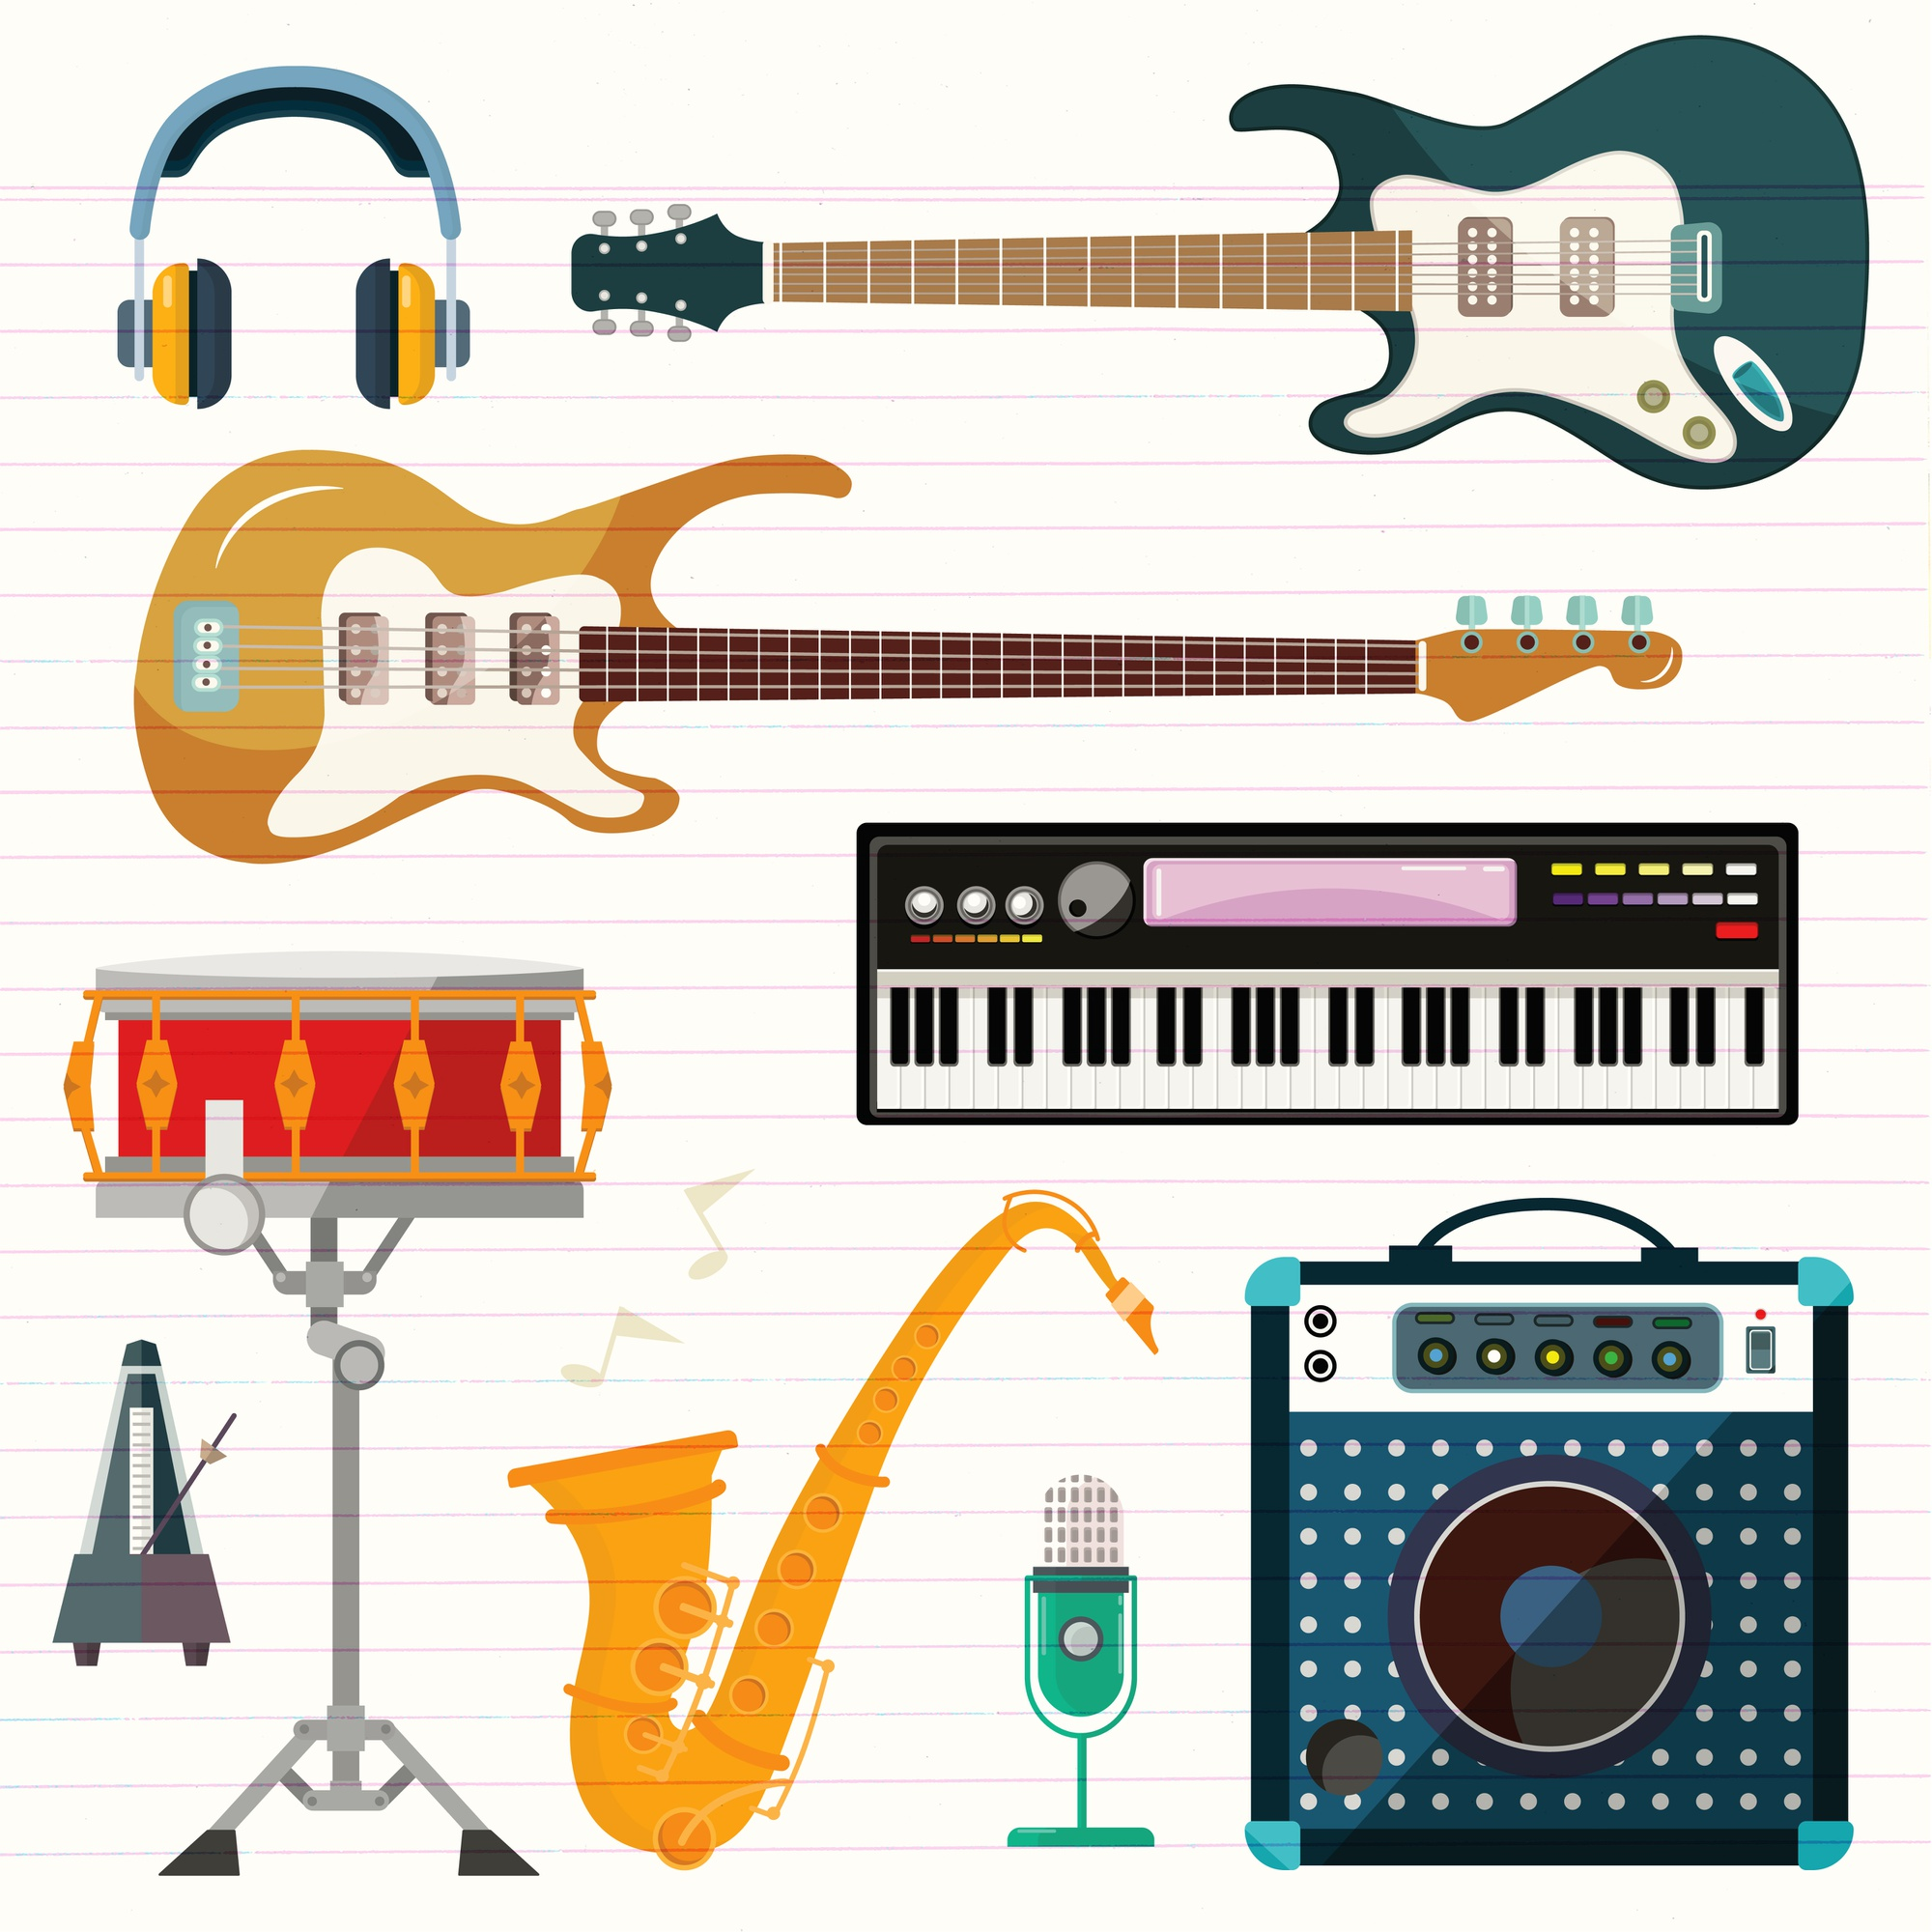 Guitar, piano and drum station vector icons.